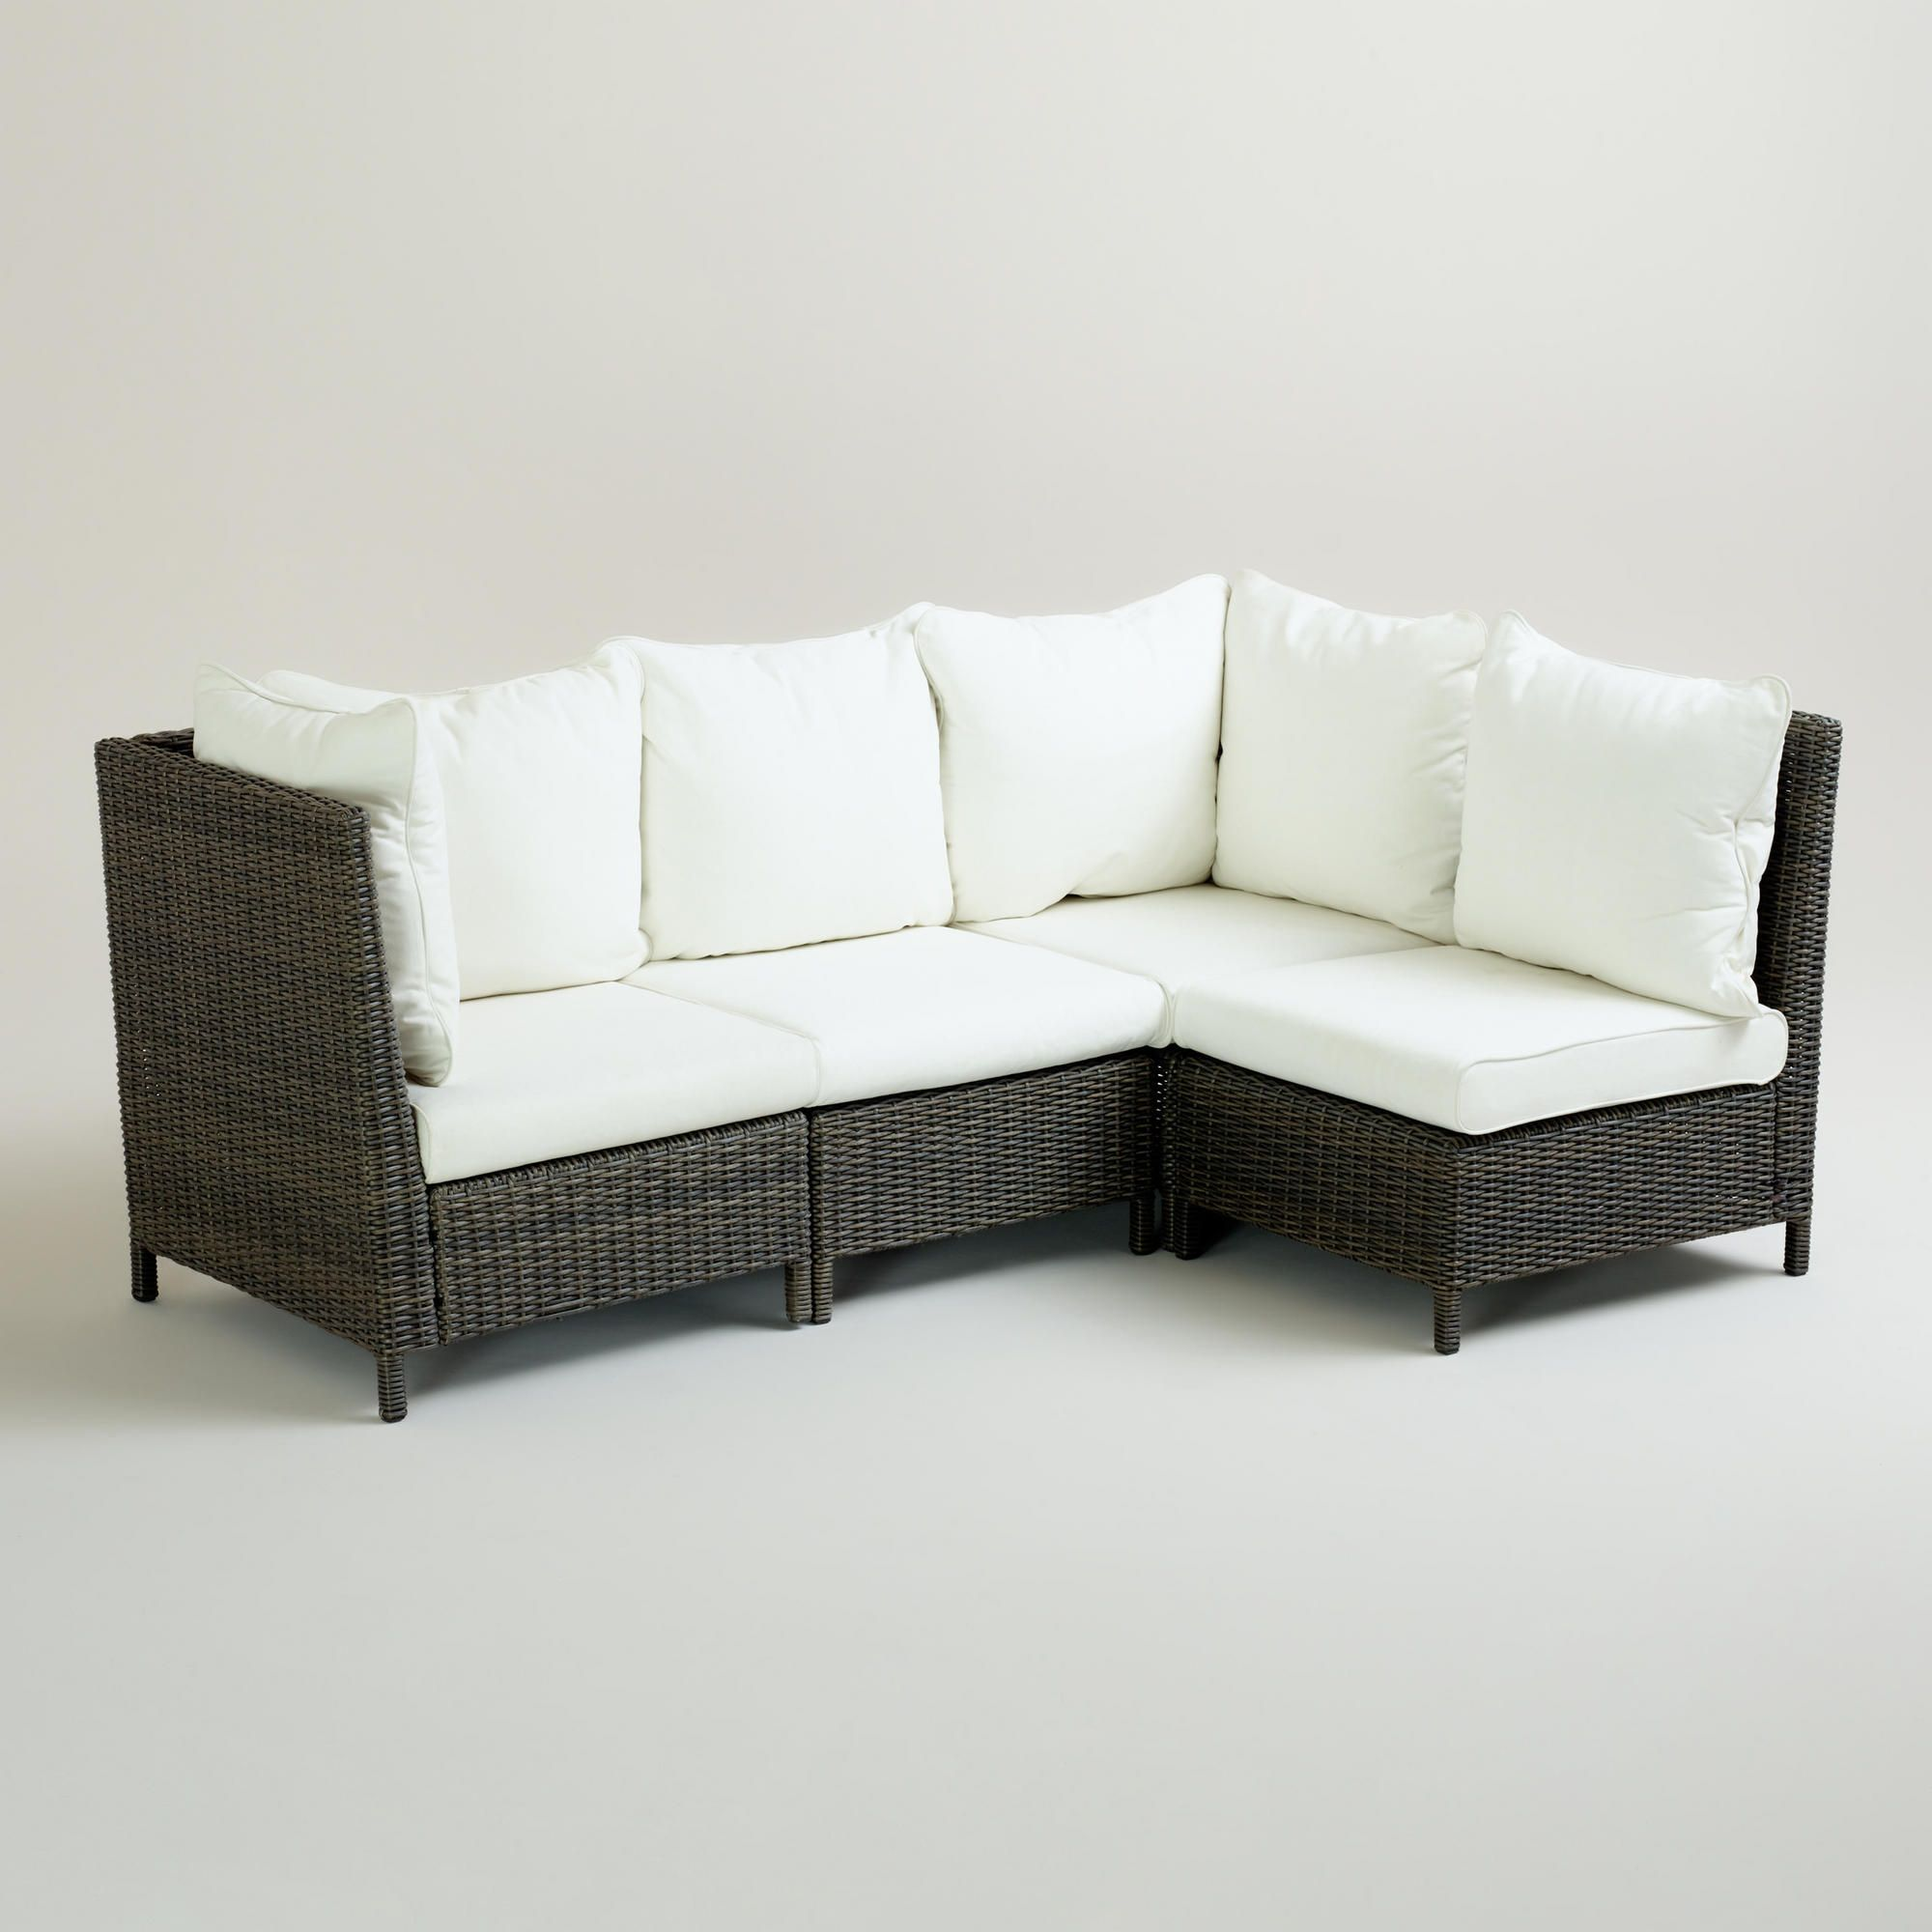 metal with clearance cupboard design patio home incredible furniture concept big wood fortunoff lots outdoor costco and